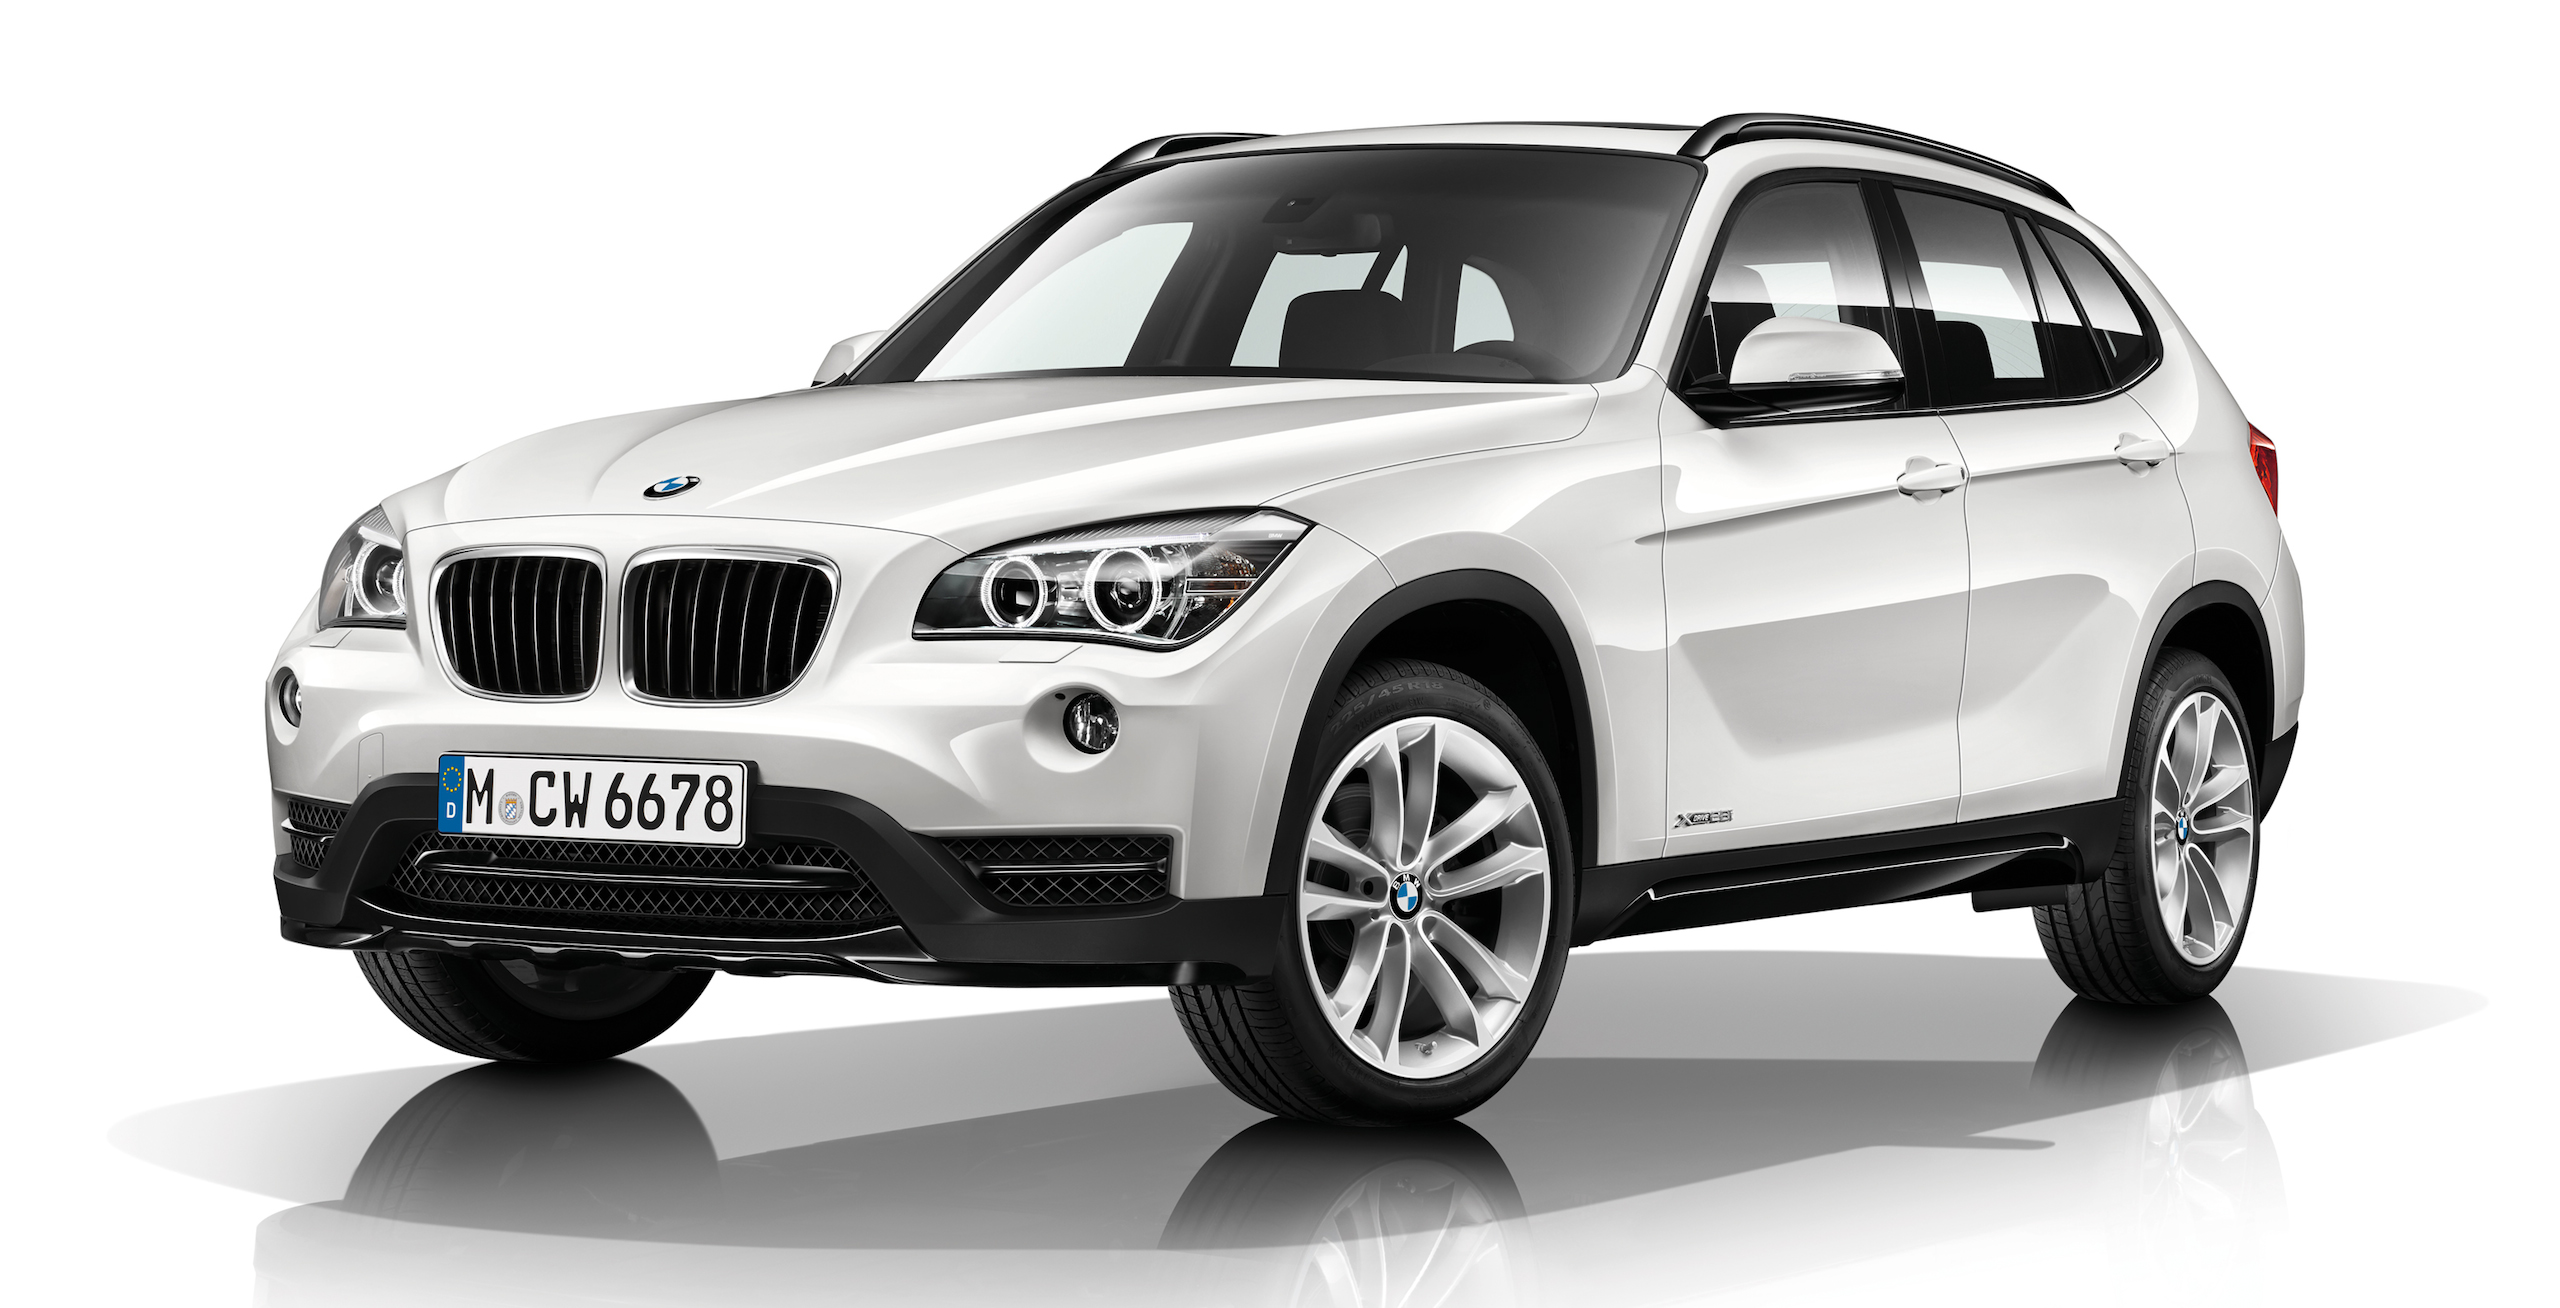 bmw x1 compact suv gets a minor refresh for 2014 image 217490